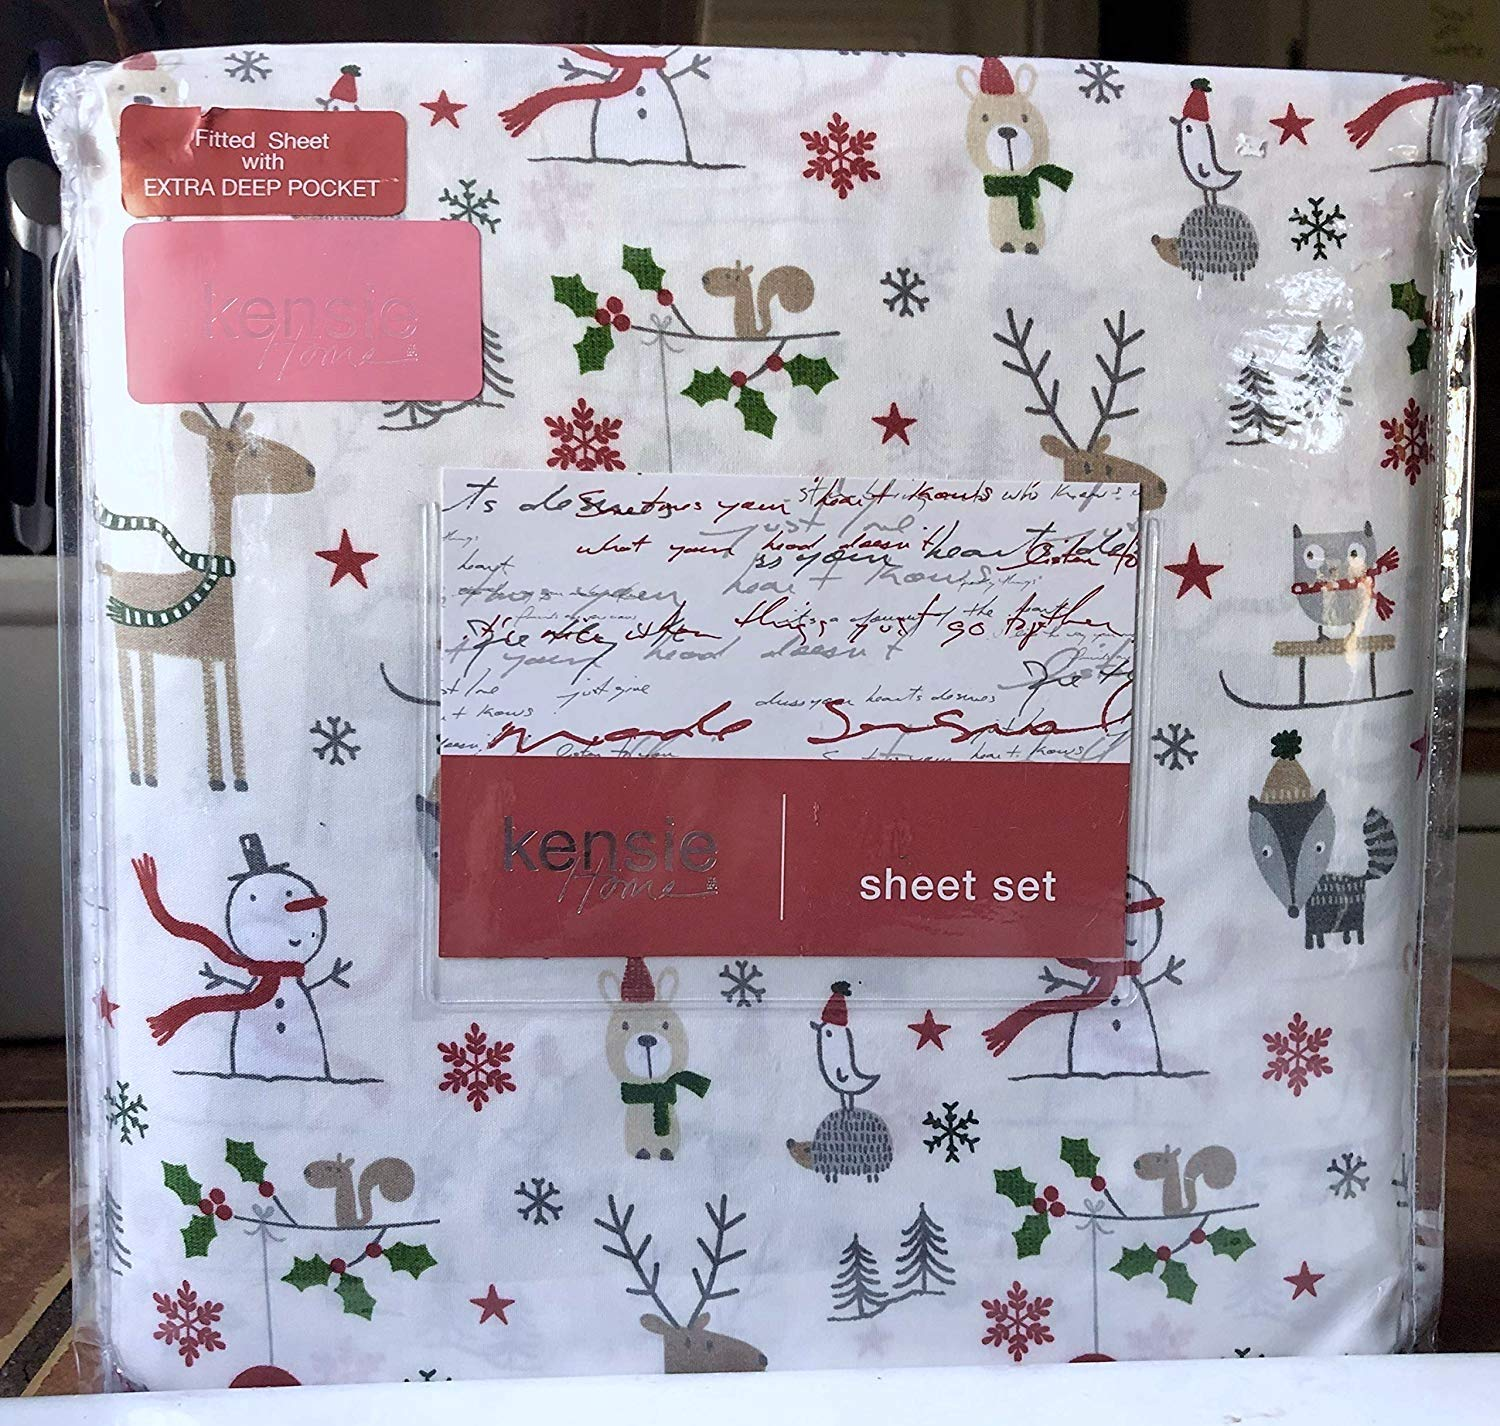 Kensie Home Christmas Holiday Snowman Winter Sheet Set - Full Size (owl Bear Fox)